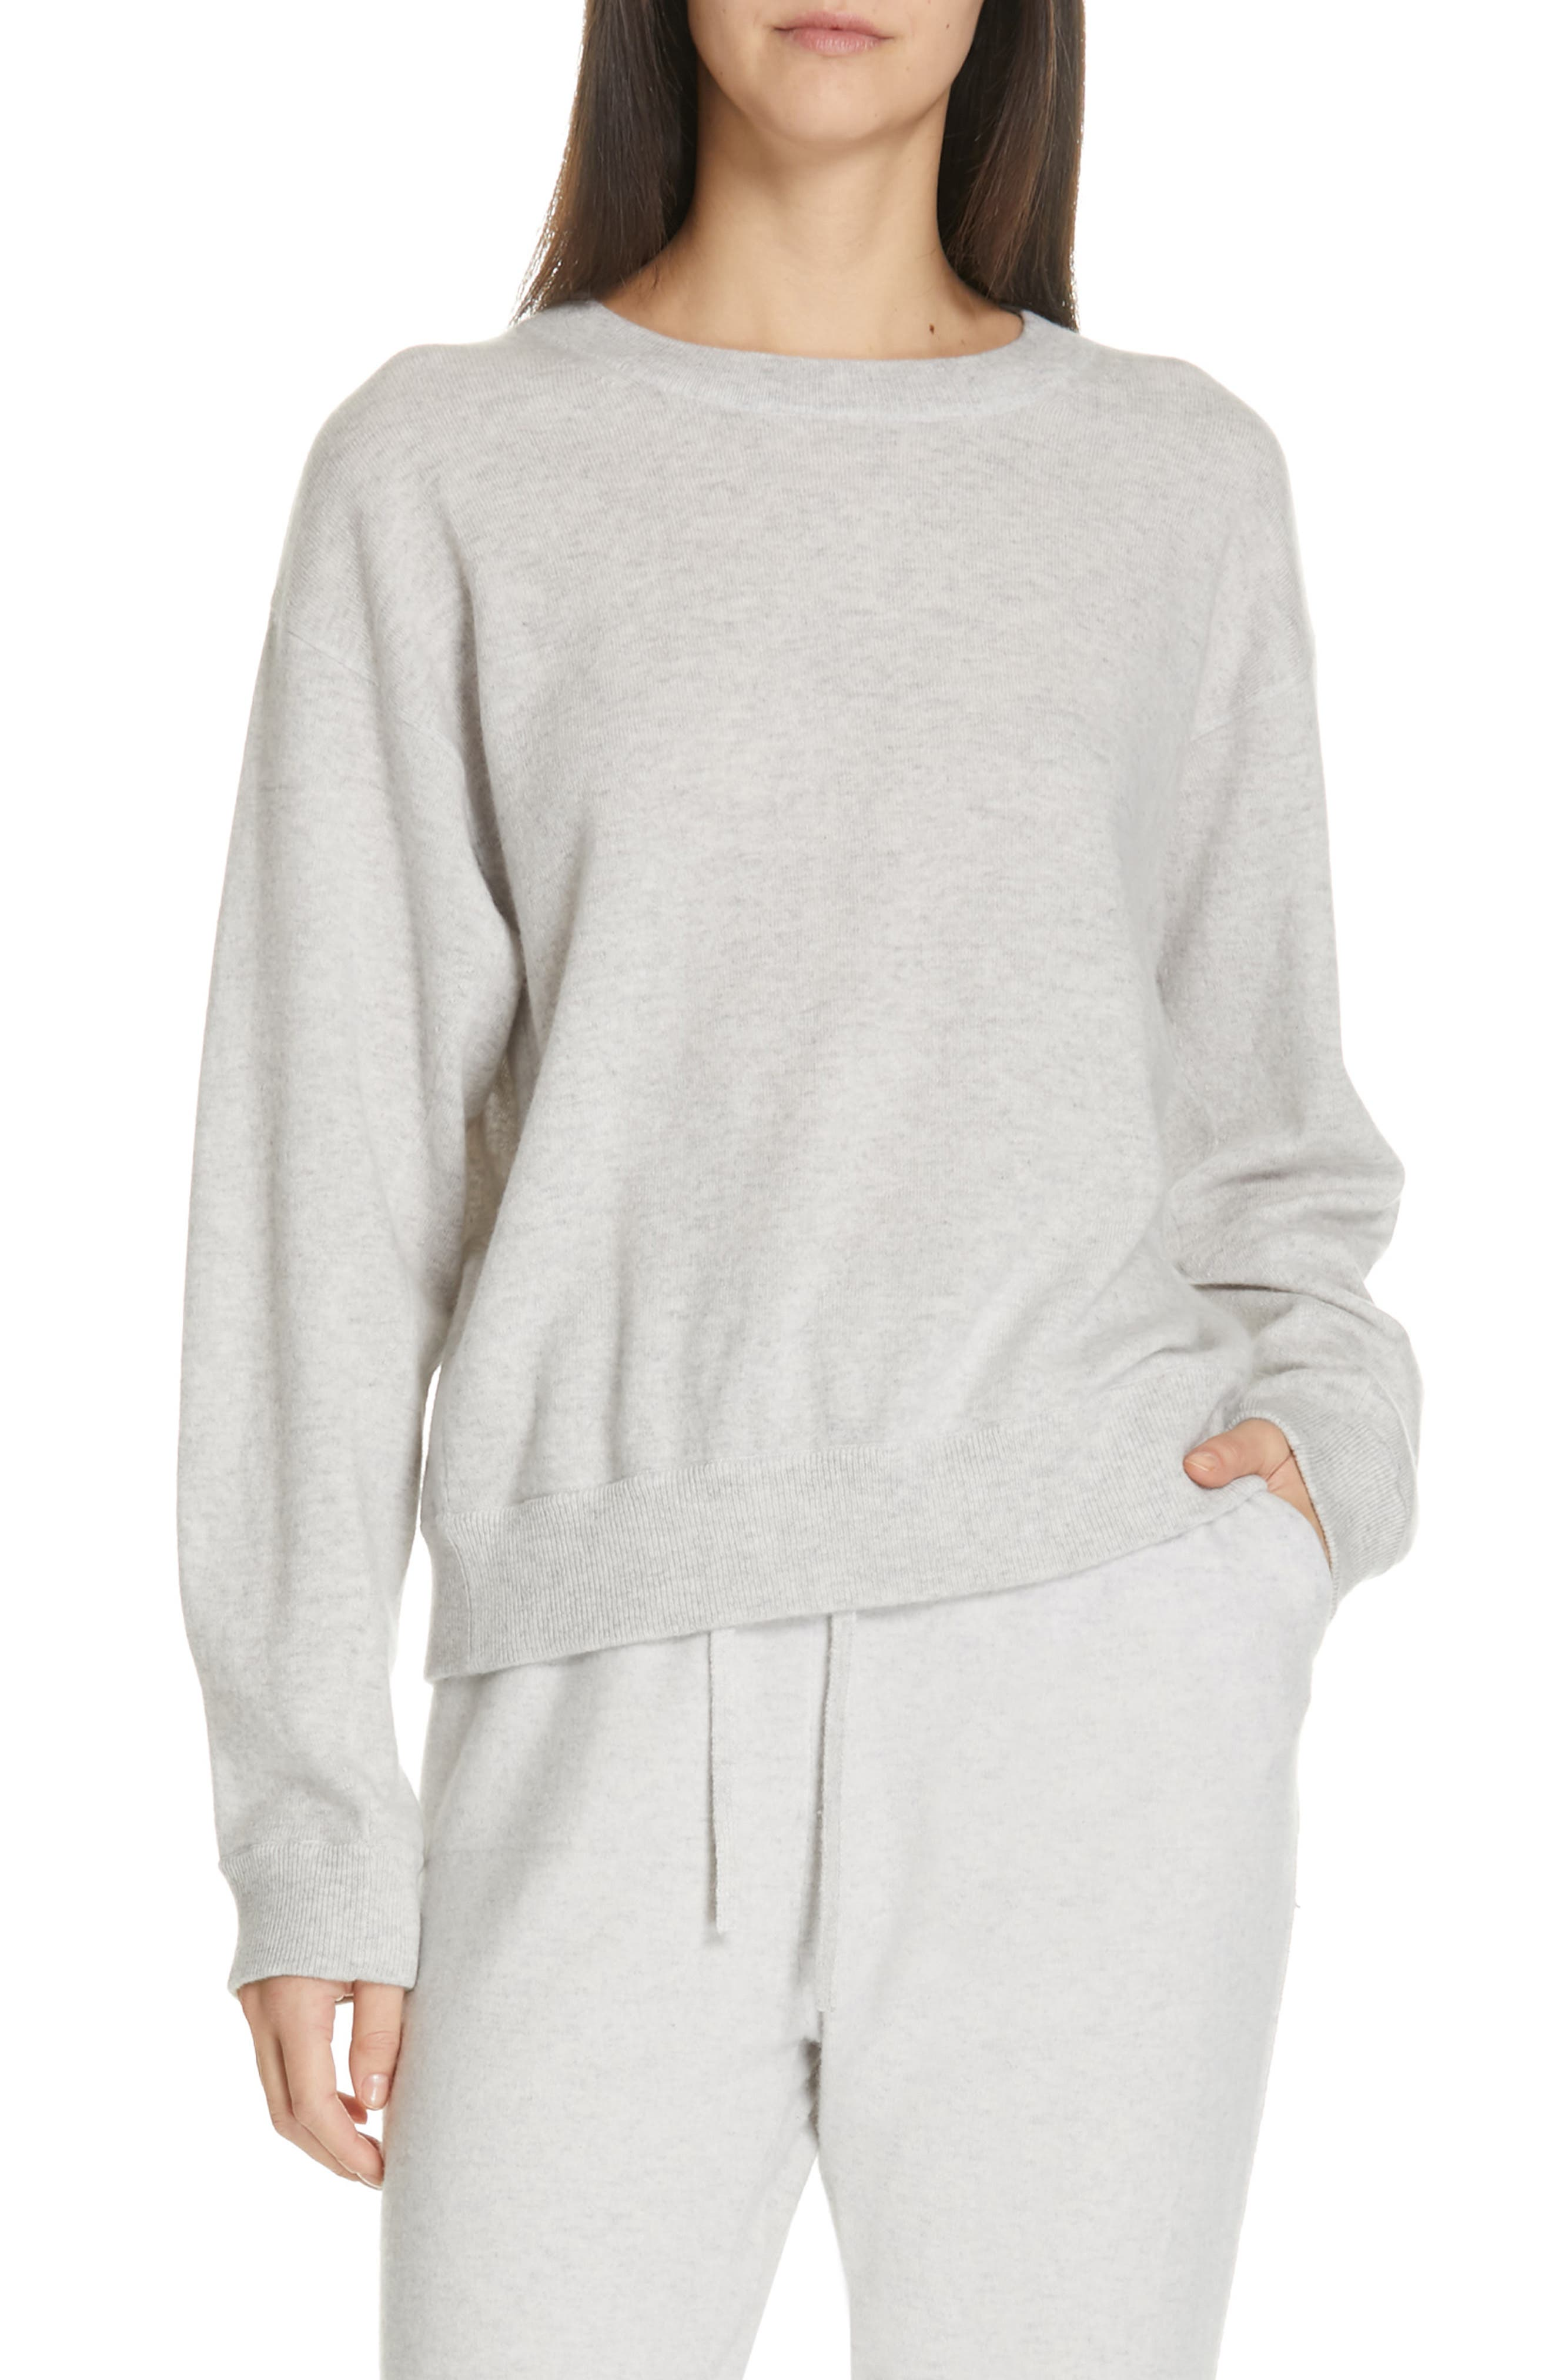 VINCE, Boxy Cashmere Sweater, Main thumbnail 1, color, LIGHT HEATHER GREY